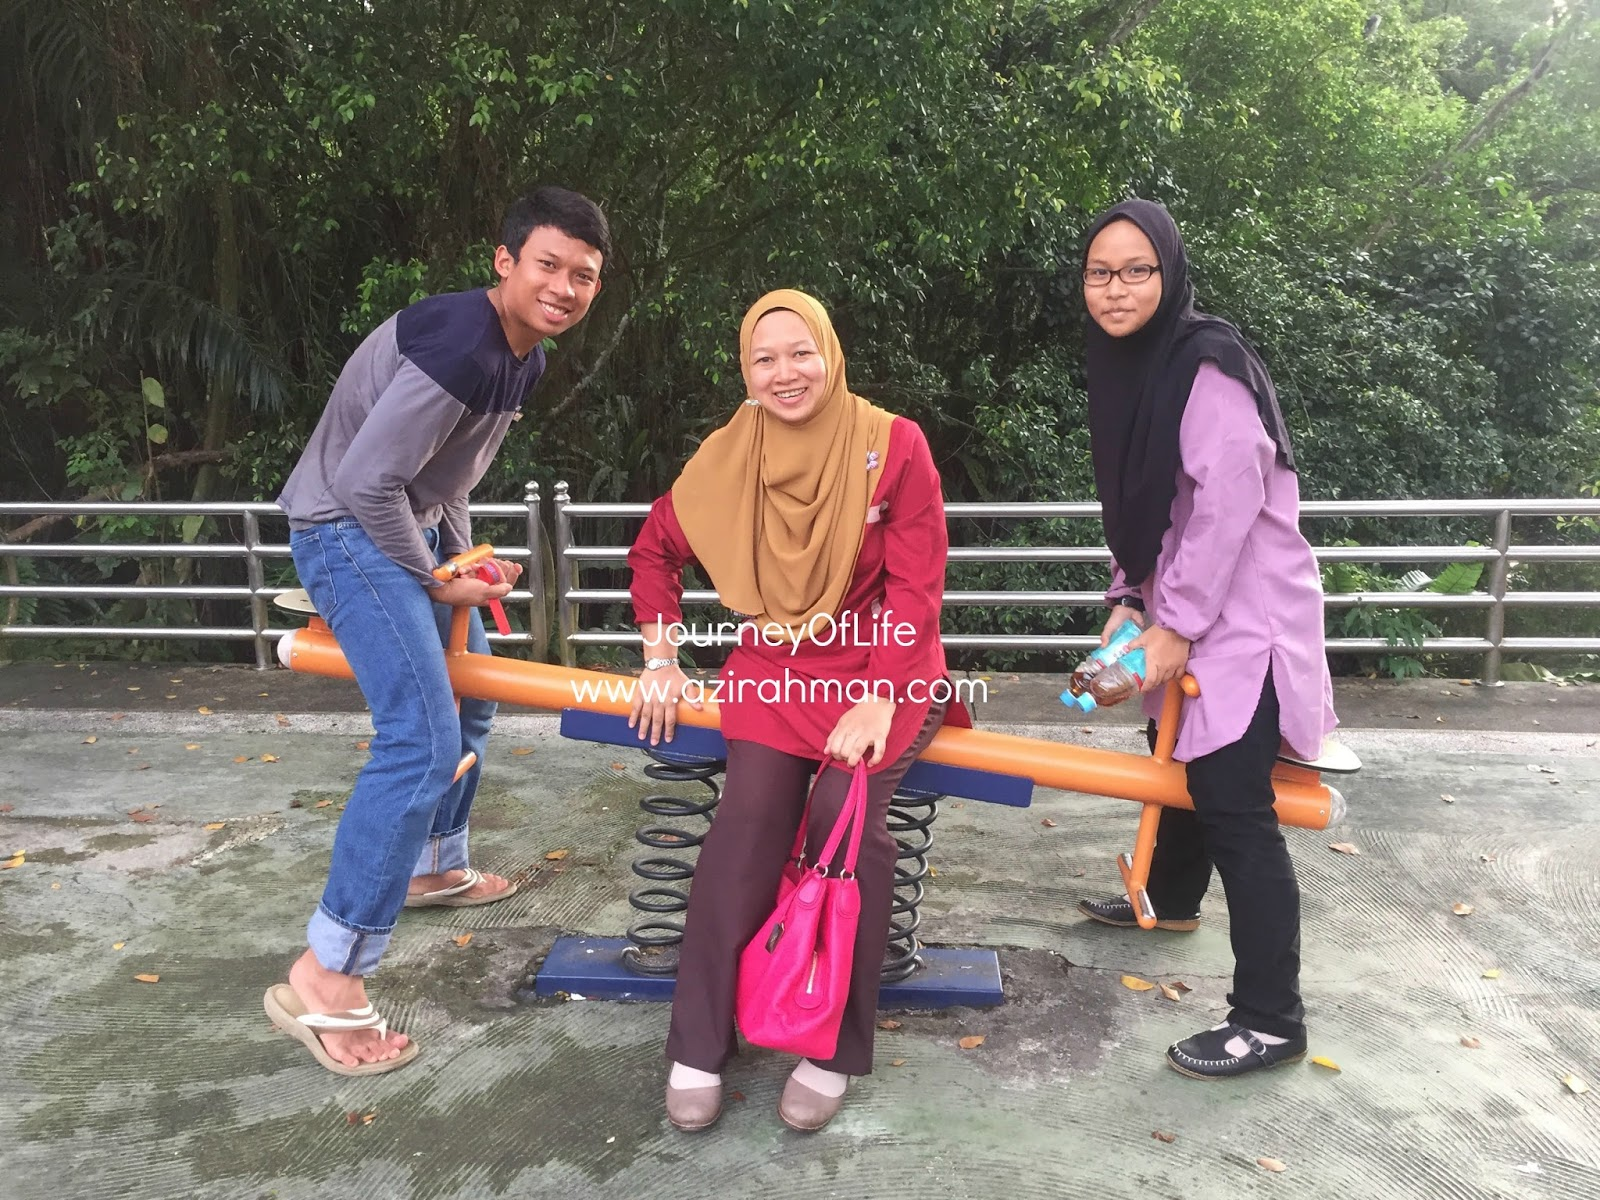 harga tiket masuk zoo taiping, zoo taiping night safari, tengok binatang, zoo taiping